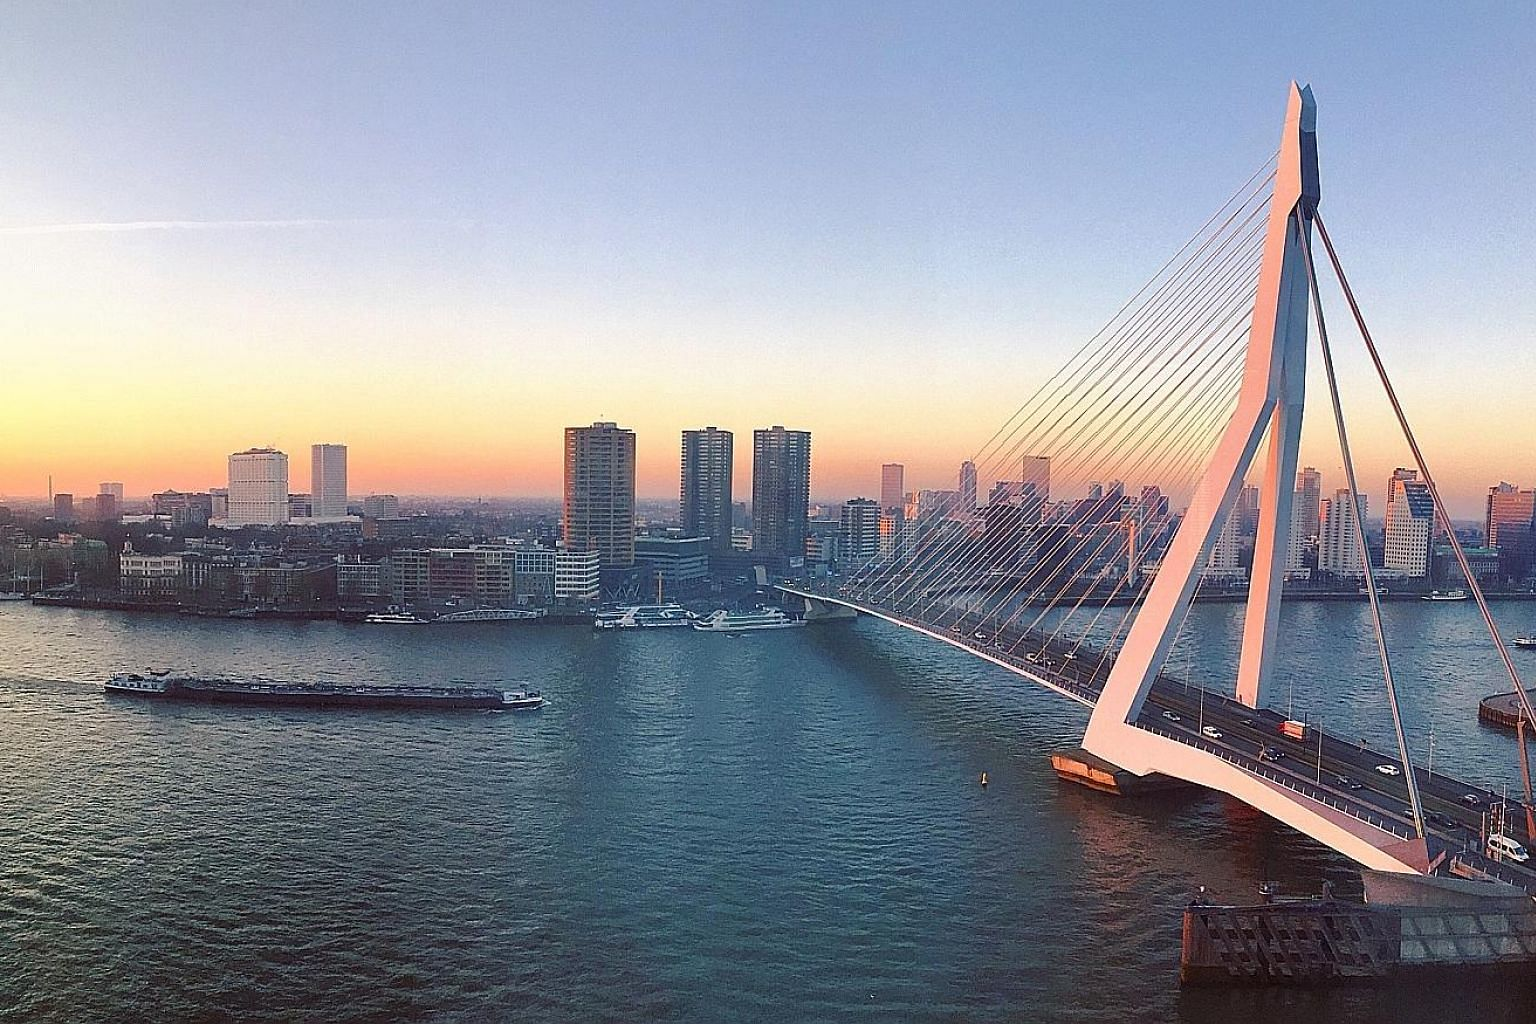 The Erasmus Bridge in Rotterdam, a city of futuristic architecture and an abundance of art and design.